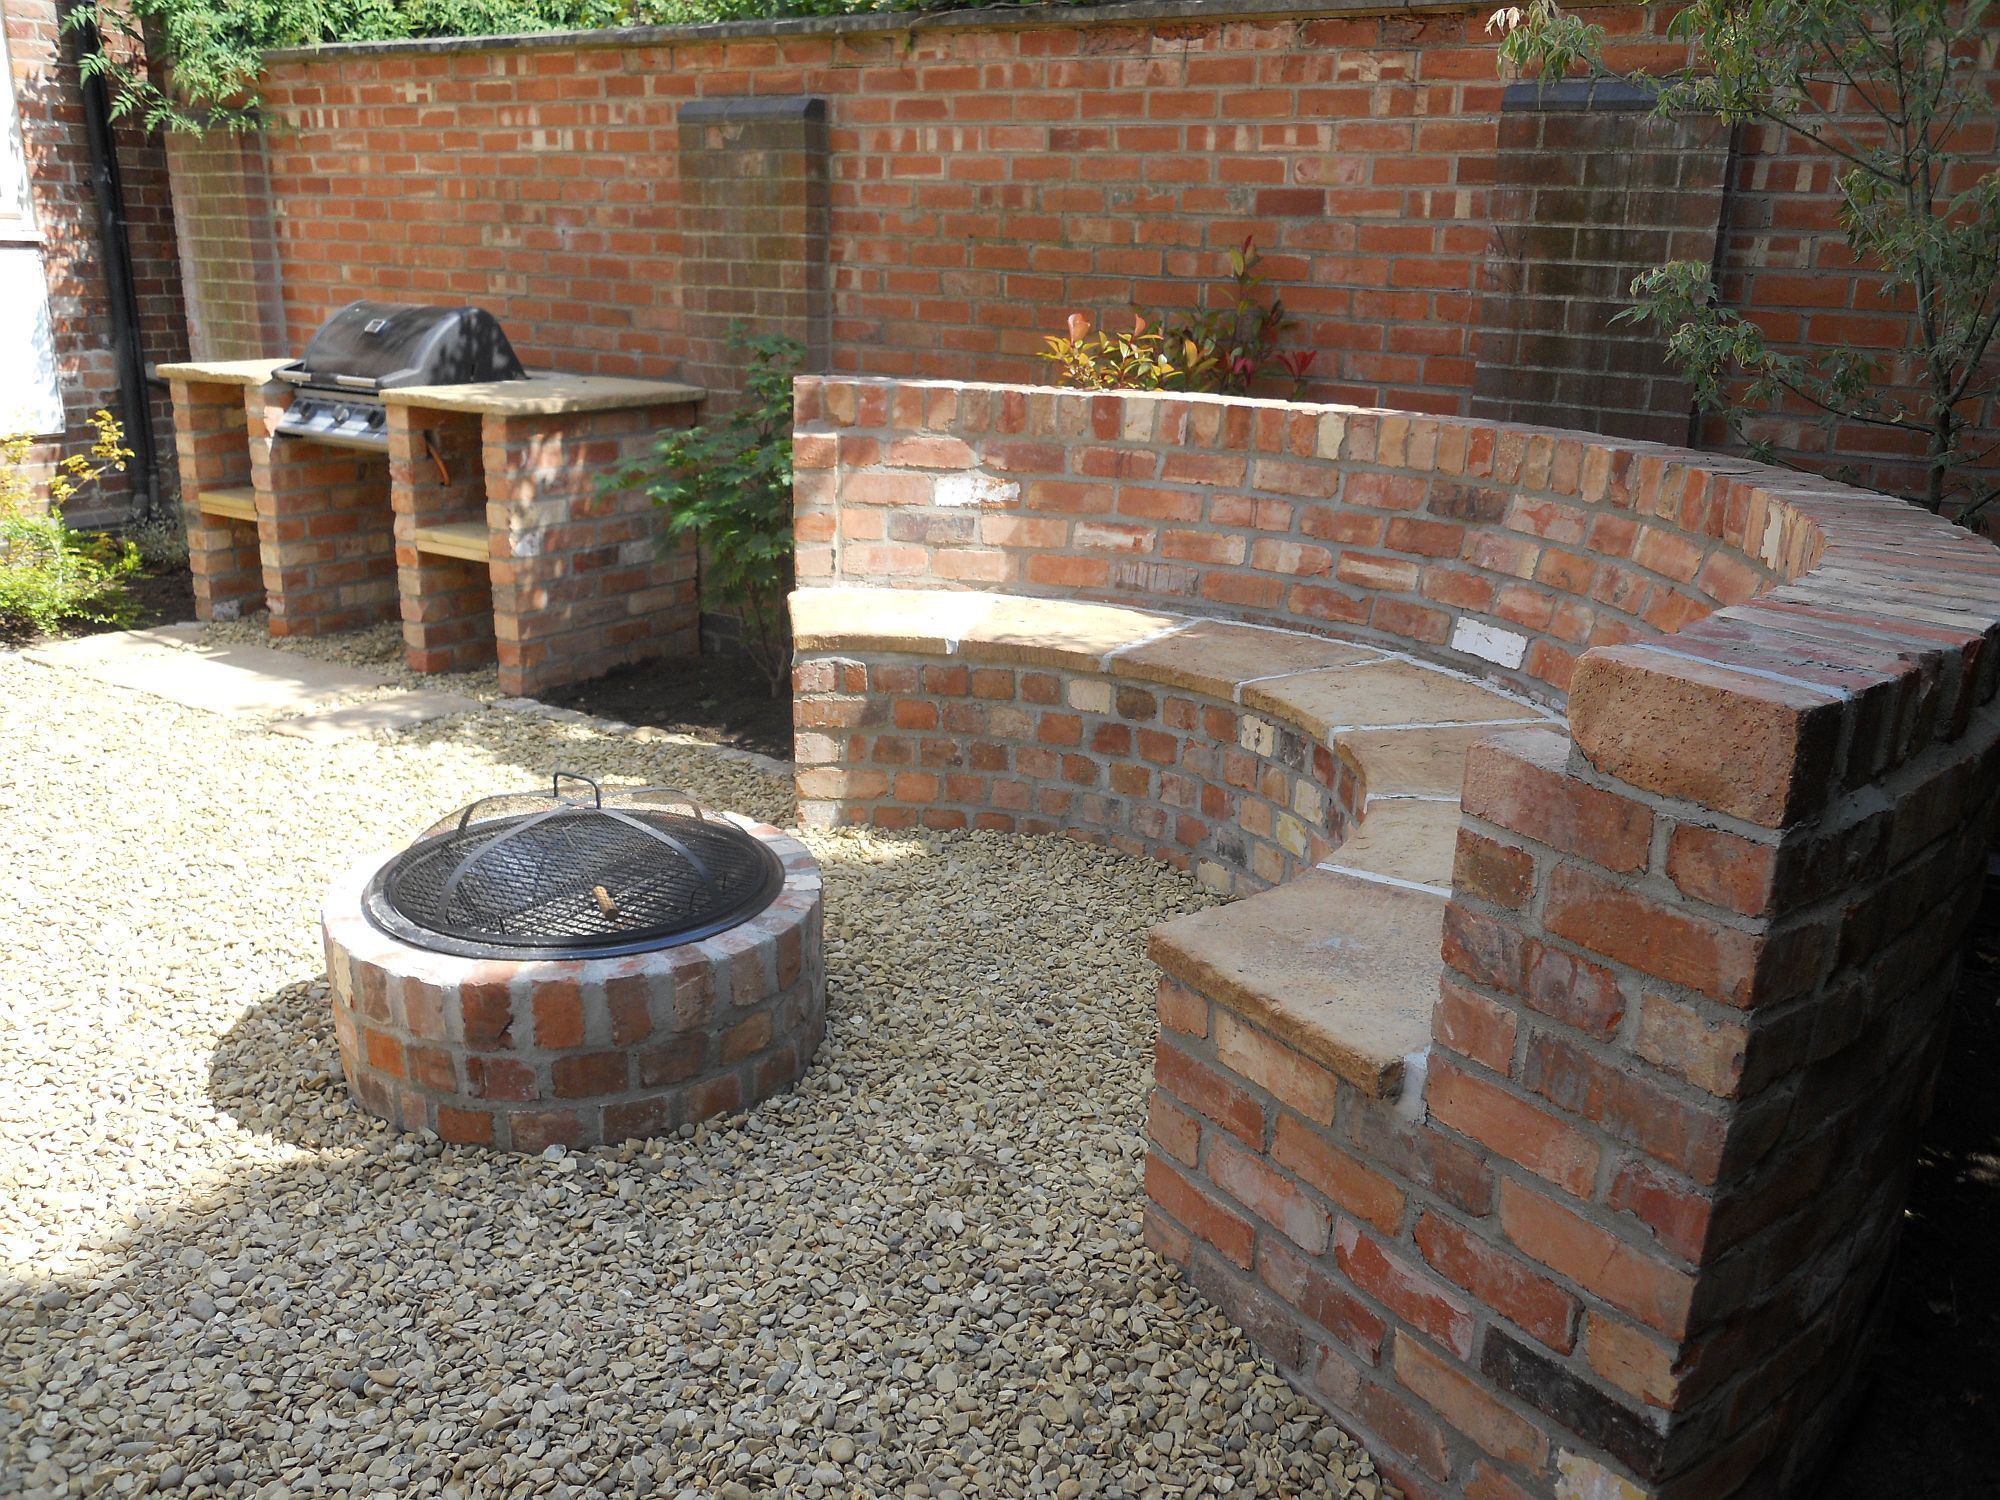 Seat with fire pit and b-b-q | garden ideas | Pinterest ...